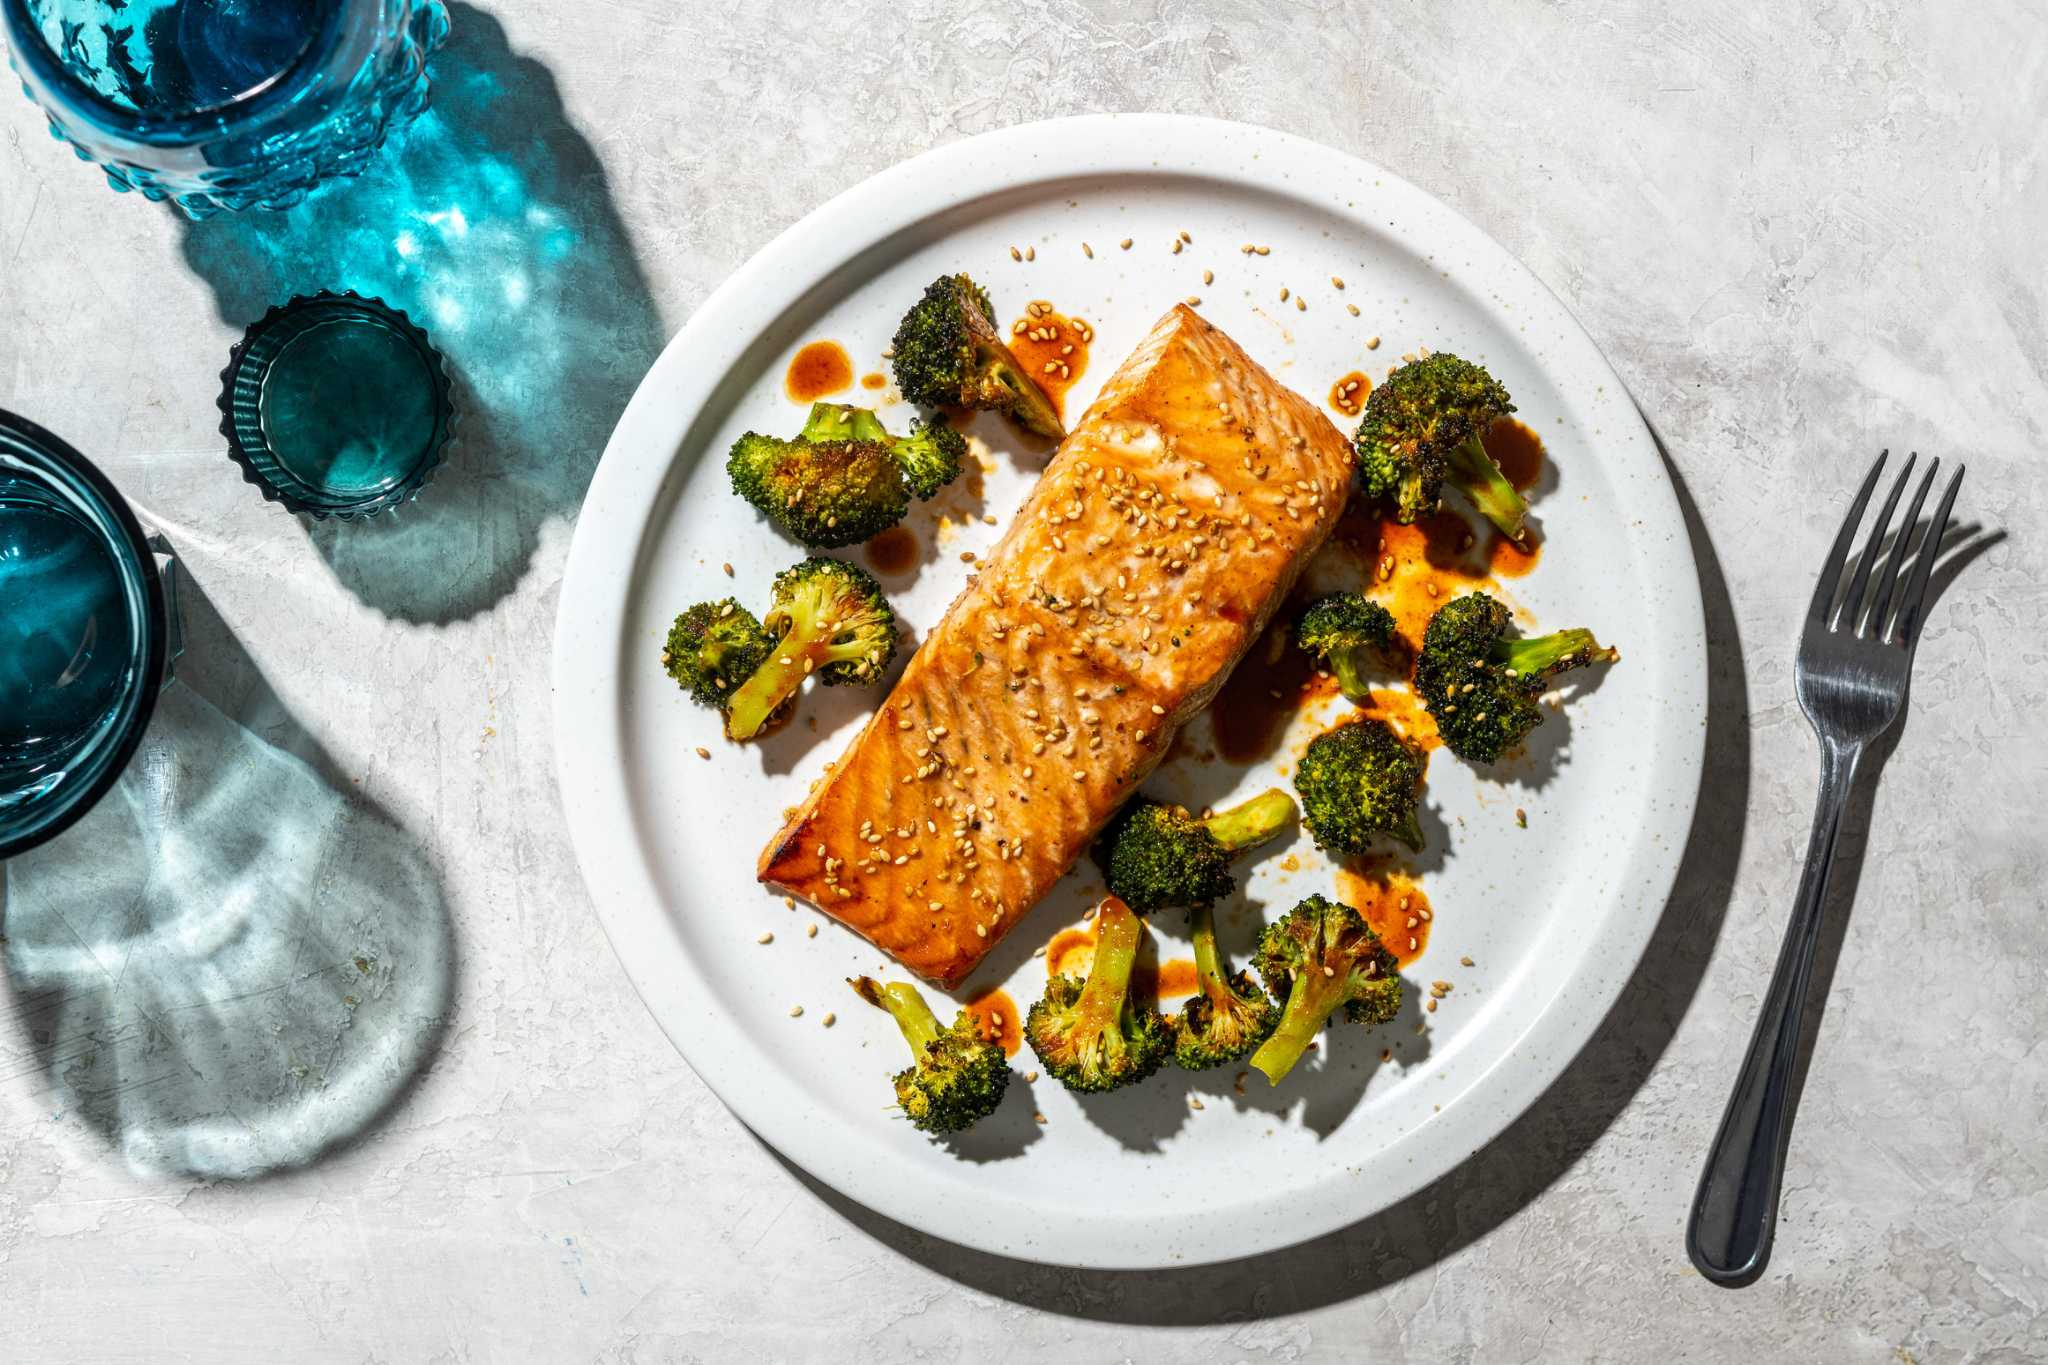 Recipe: Roasted Salmon and Broccoli with Ginger-Soy Marinade